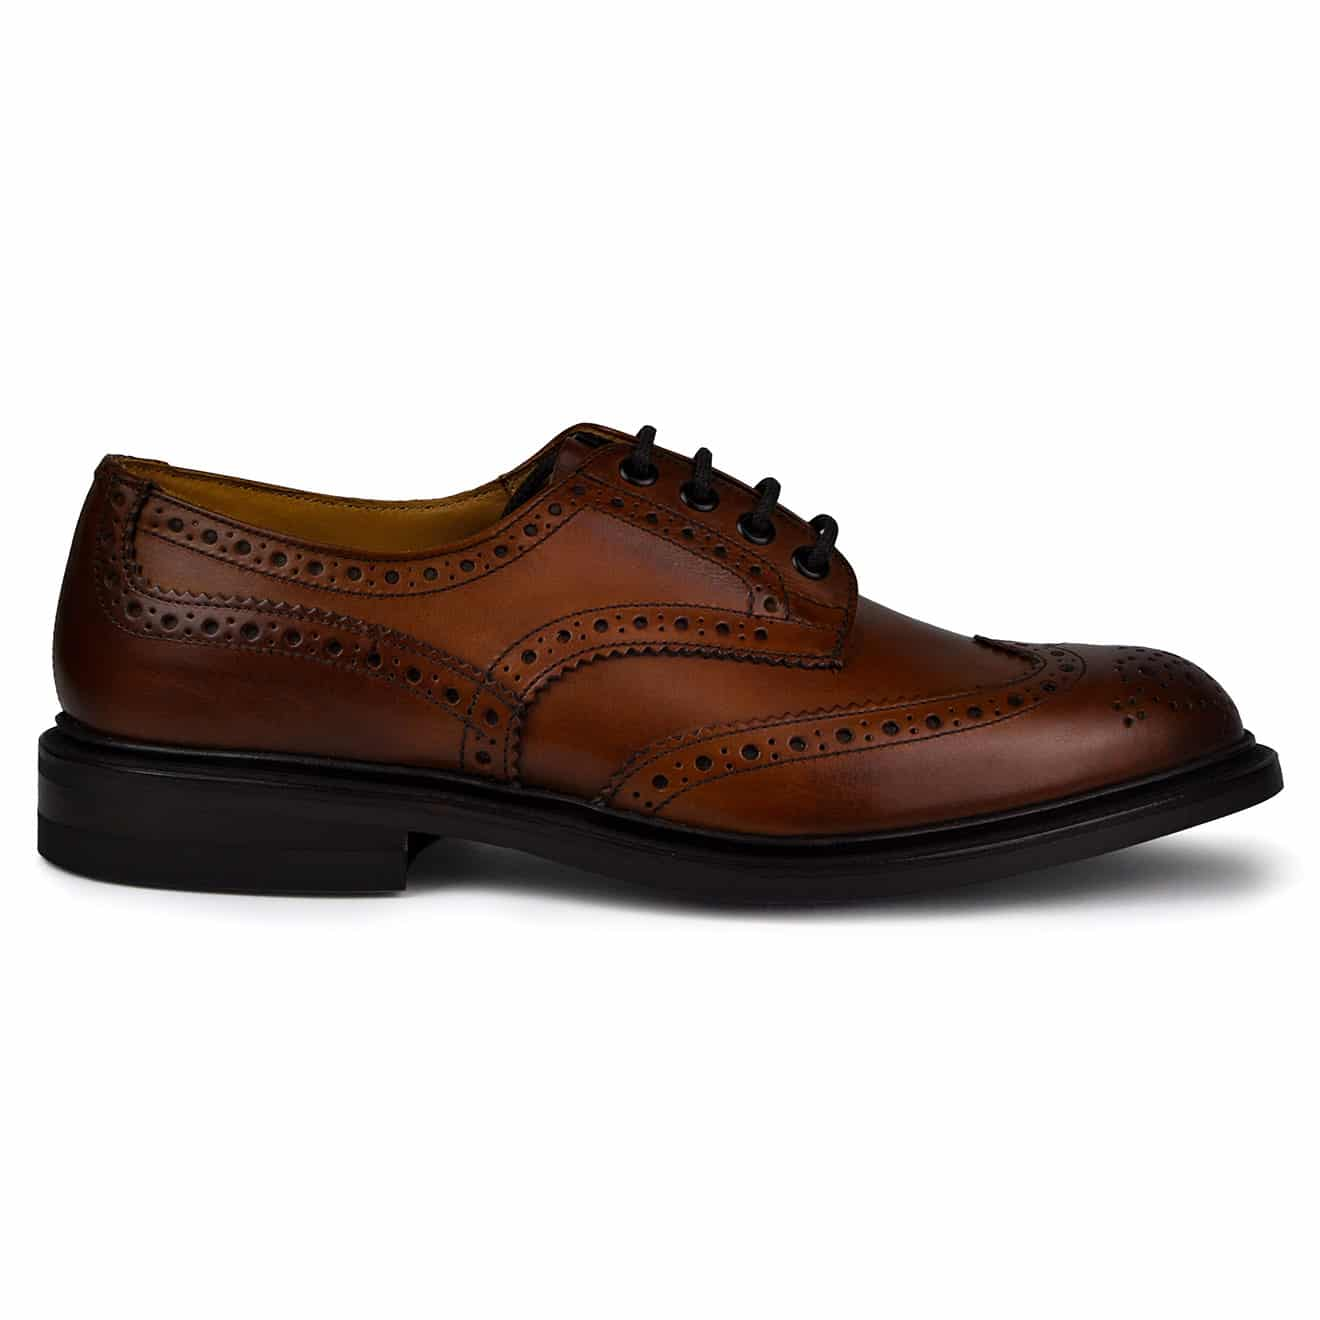 Trickers Bourton Revival Brogue Shoe Derby Sole Beechnut Burnished